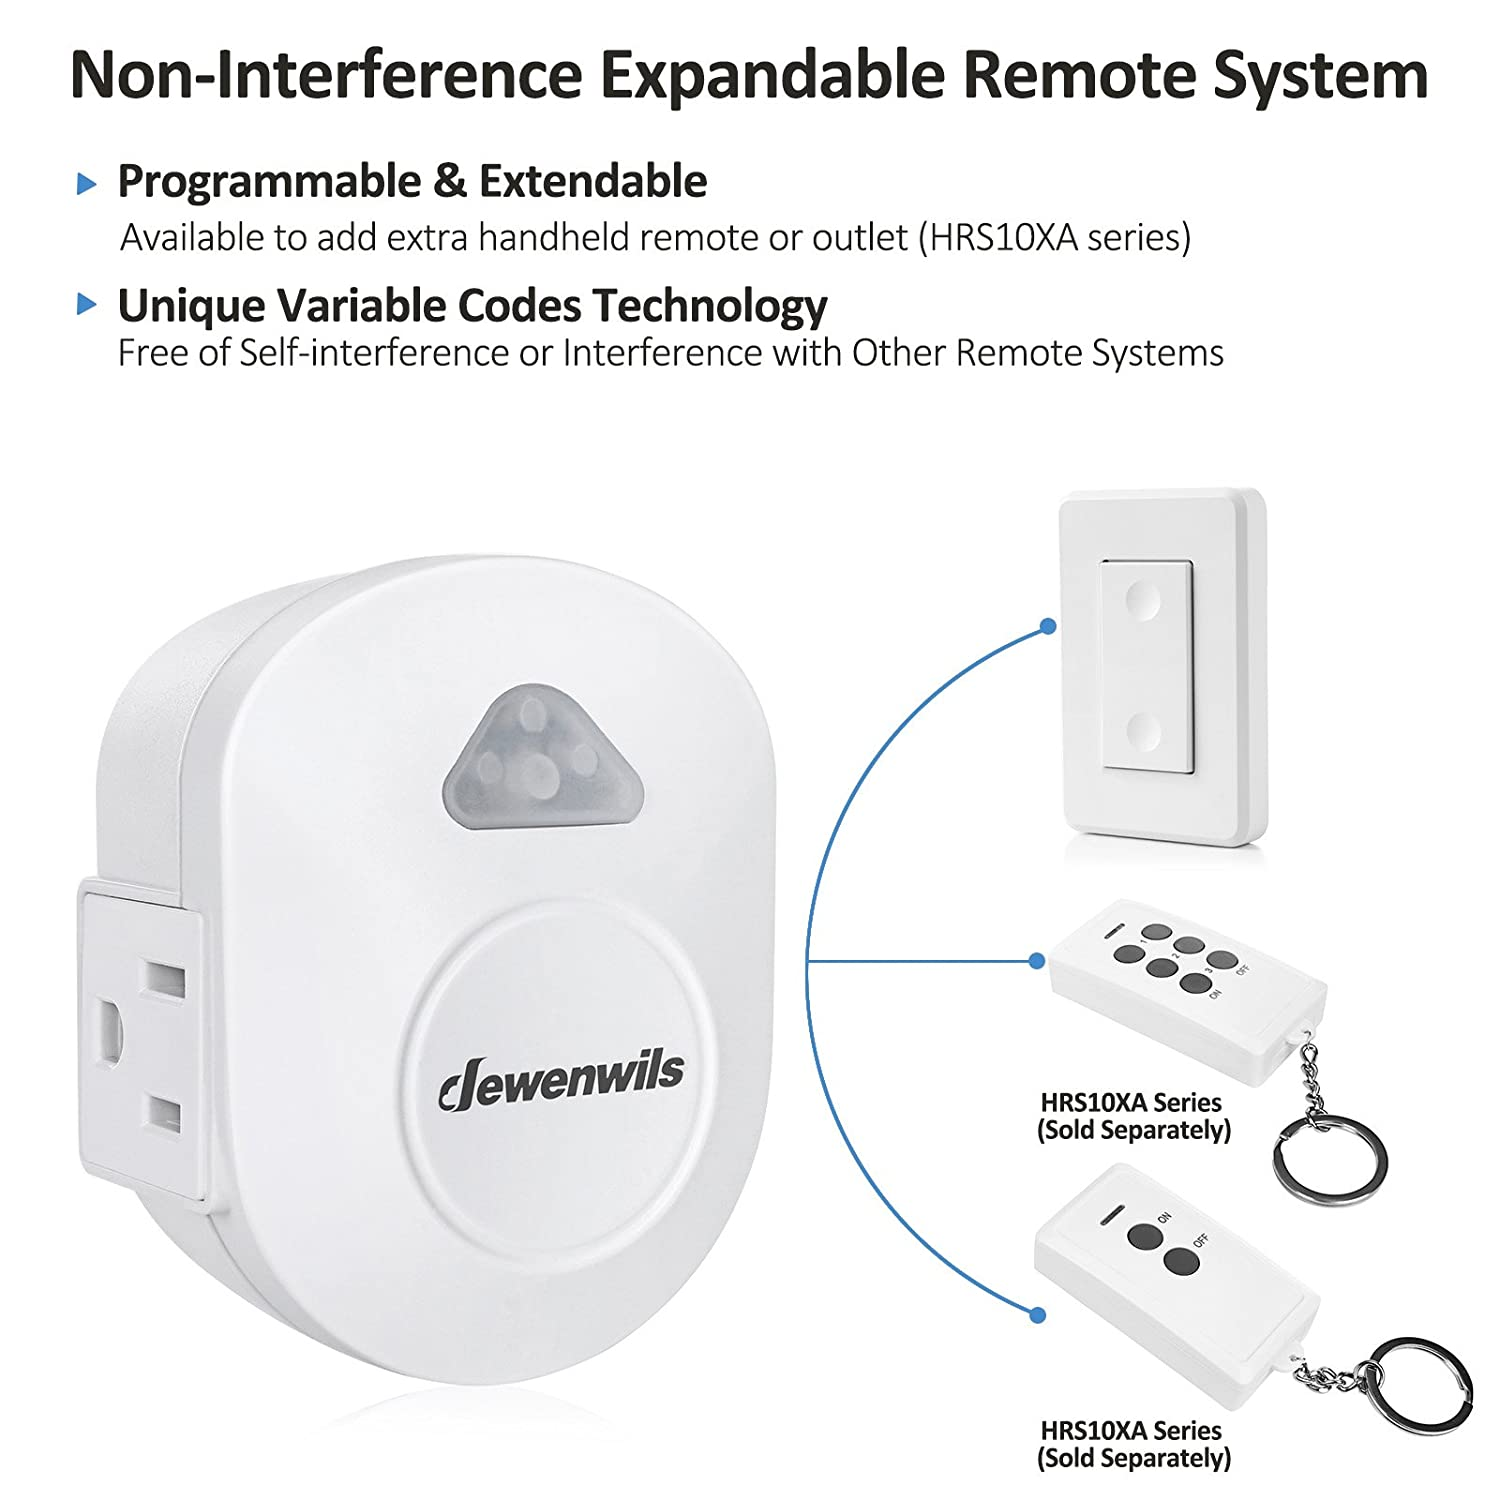 Dewenwils Wireless Wall Switch Remote Control Outlet Electrical Loop To Controls The And Lite No Gound Wires On Off Light For Lamp Interference 15 Amp Heavy Duty 100 Rf Range